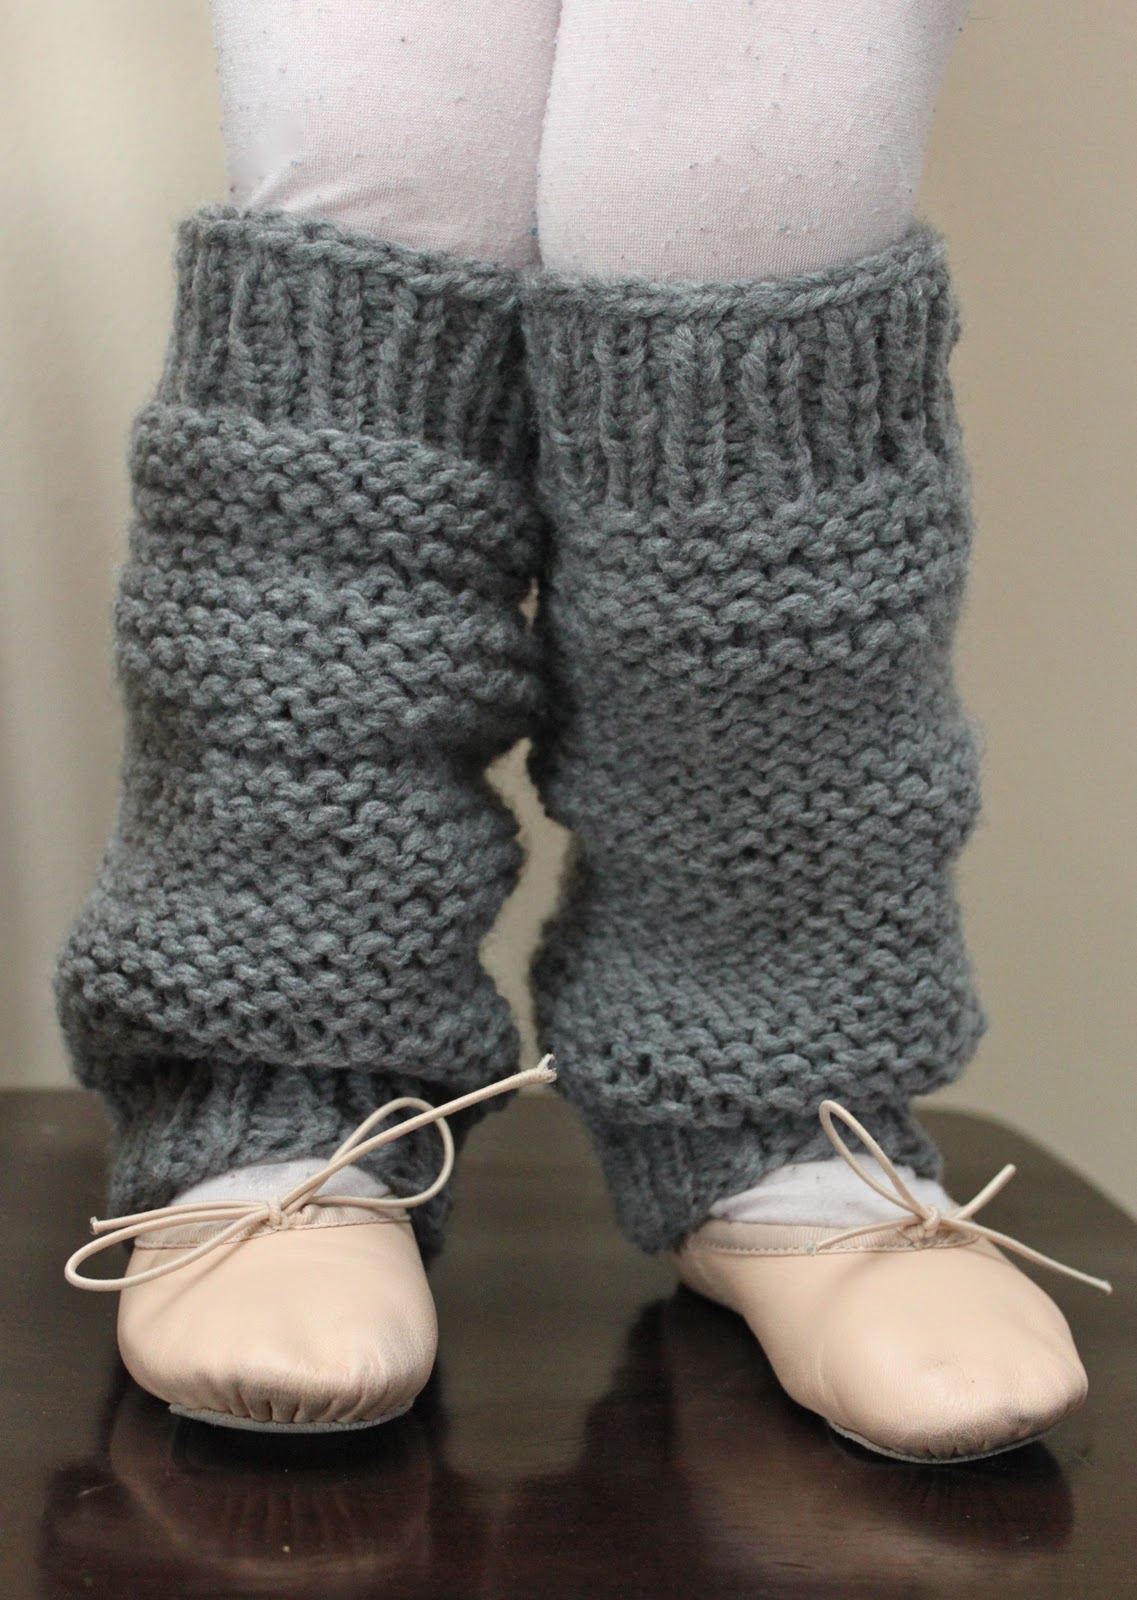 Knitting Leg Warmers Pattern : Little Girls Knit Legwarmers {A Pattern} - Smashed Peas & Carrots